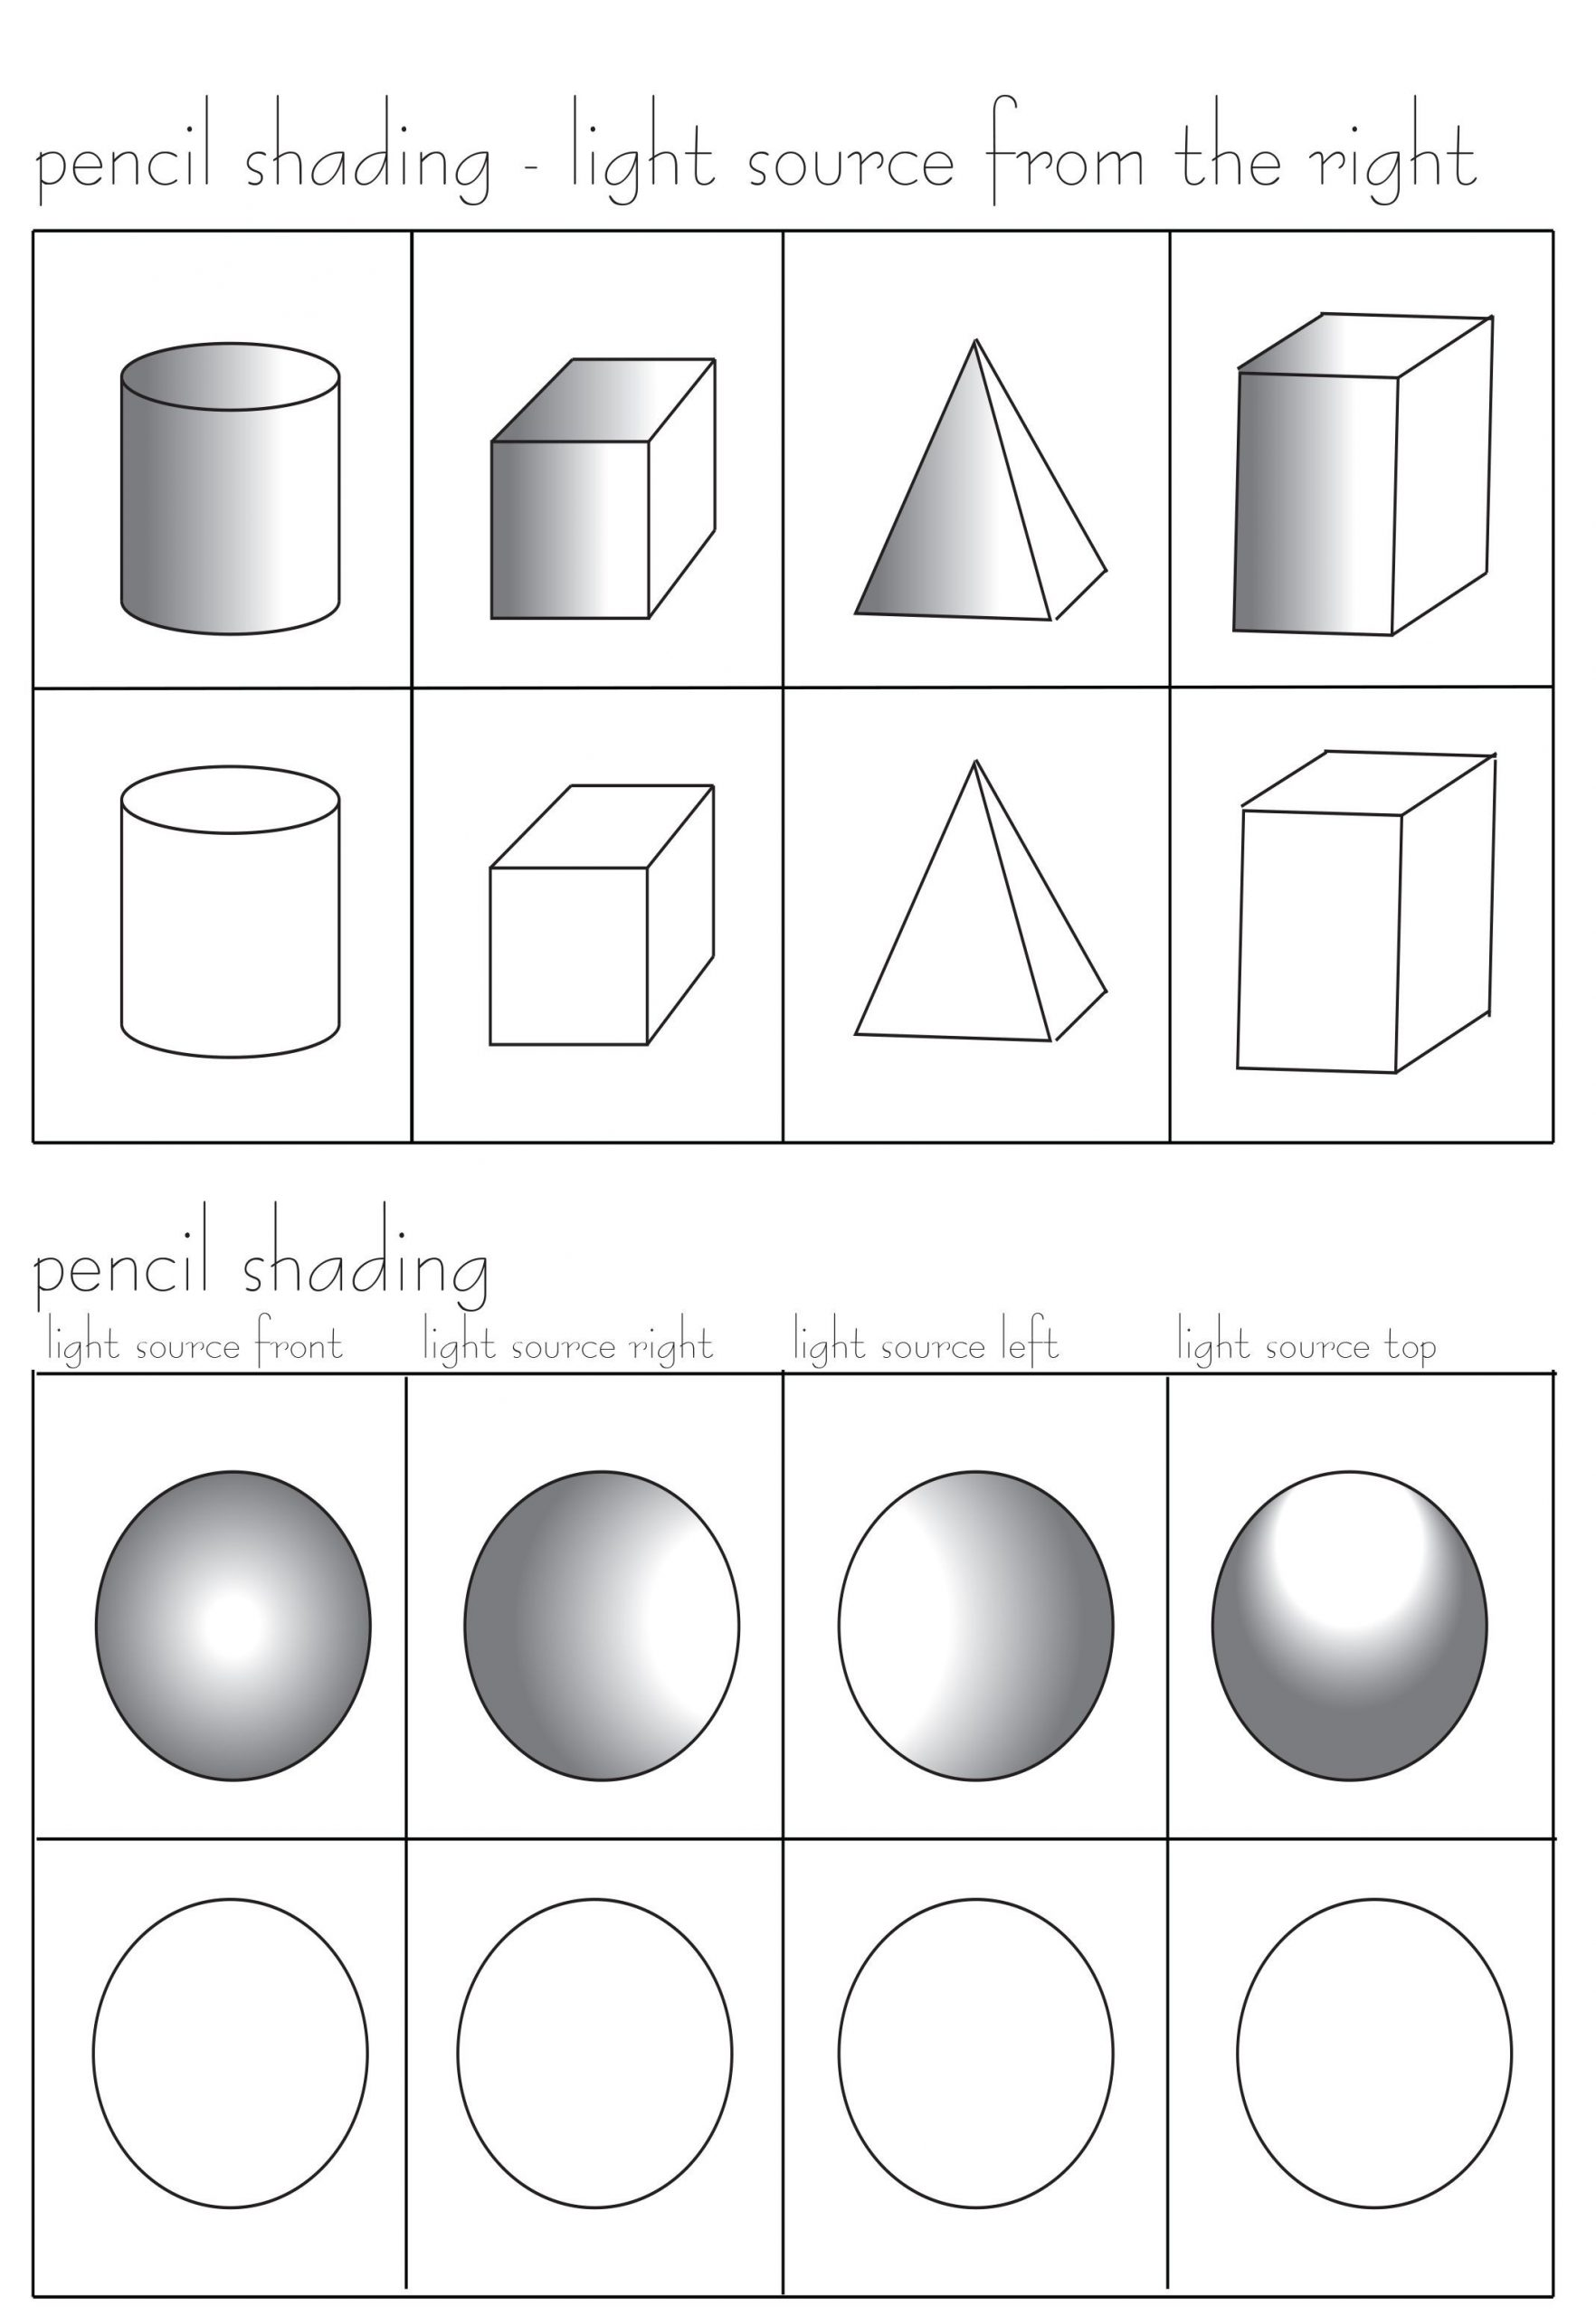 Middle School Art Worksheets Pencil Shading Worksheet Free at